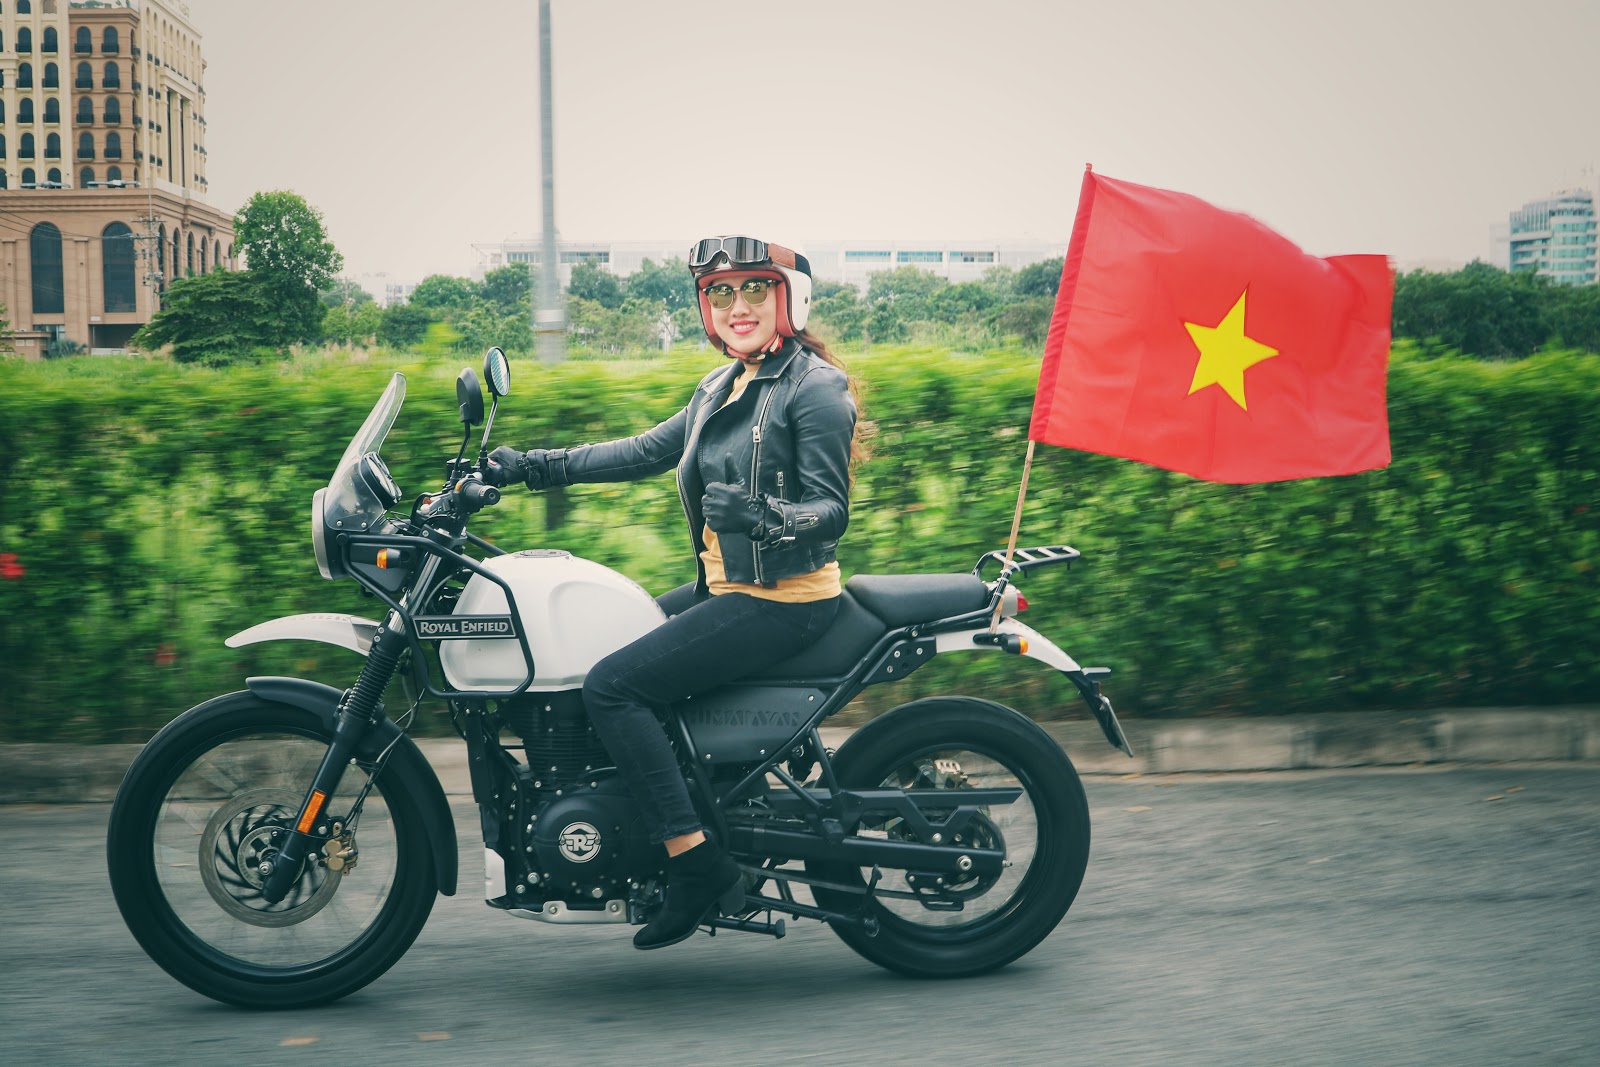 Everyone drives including Saigon Lady Riders